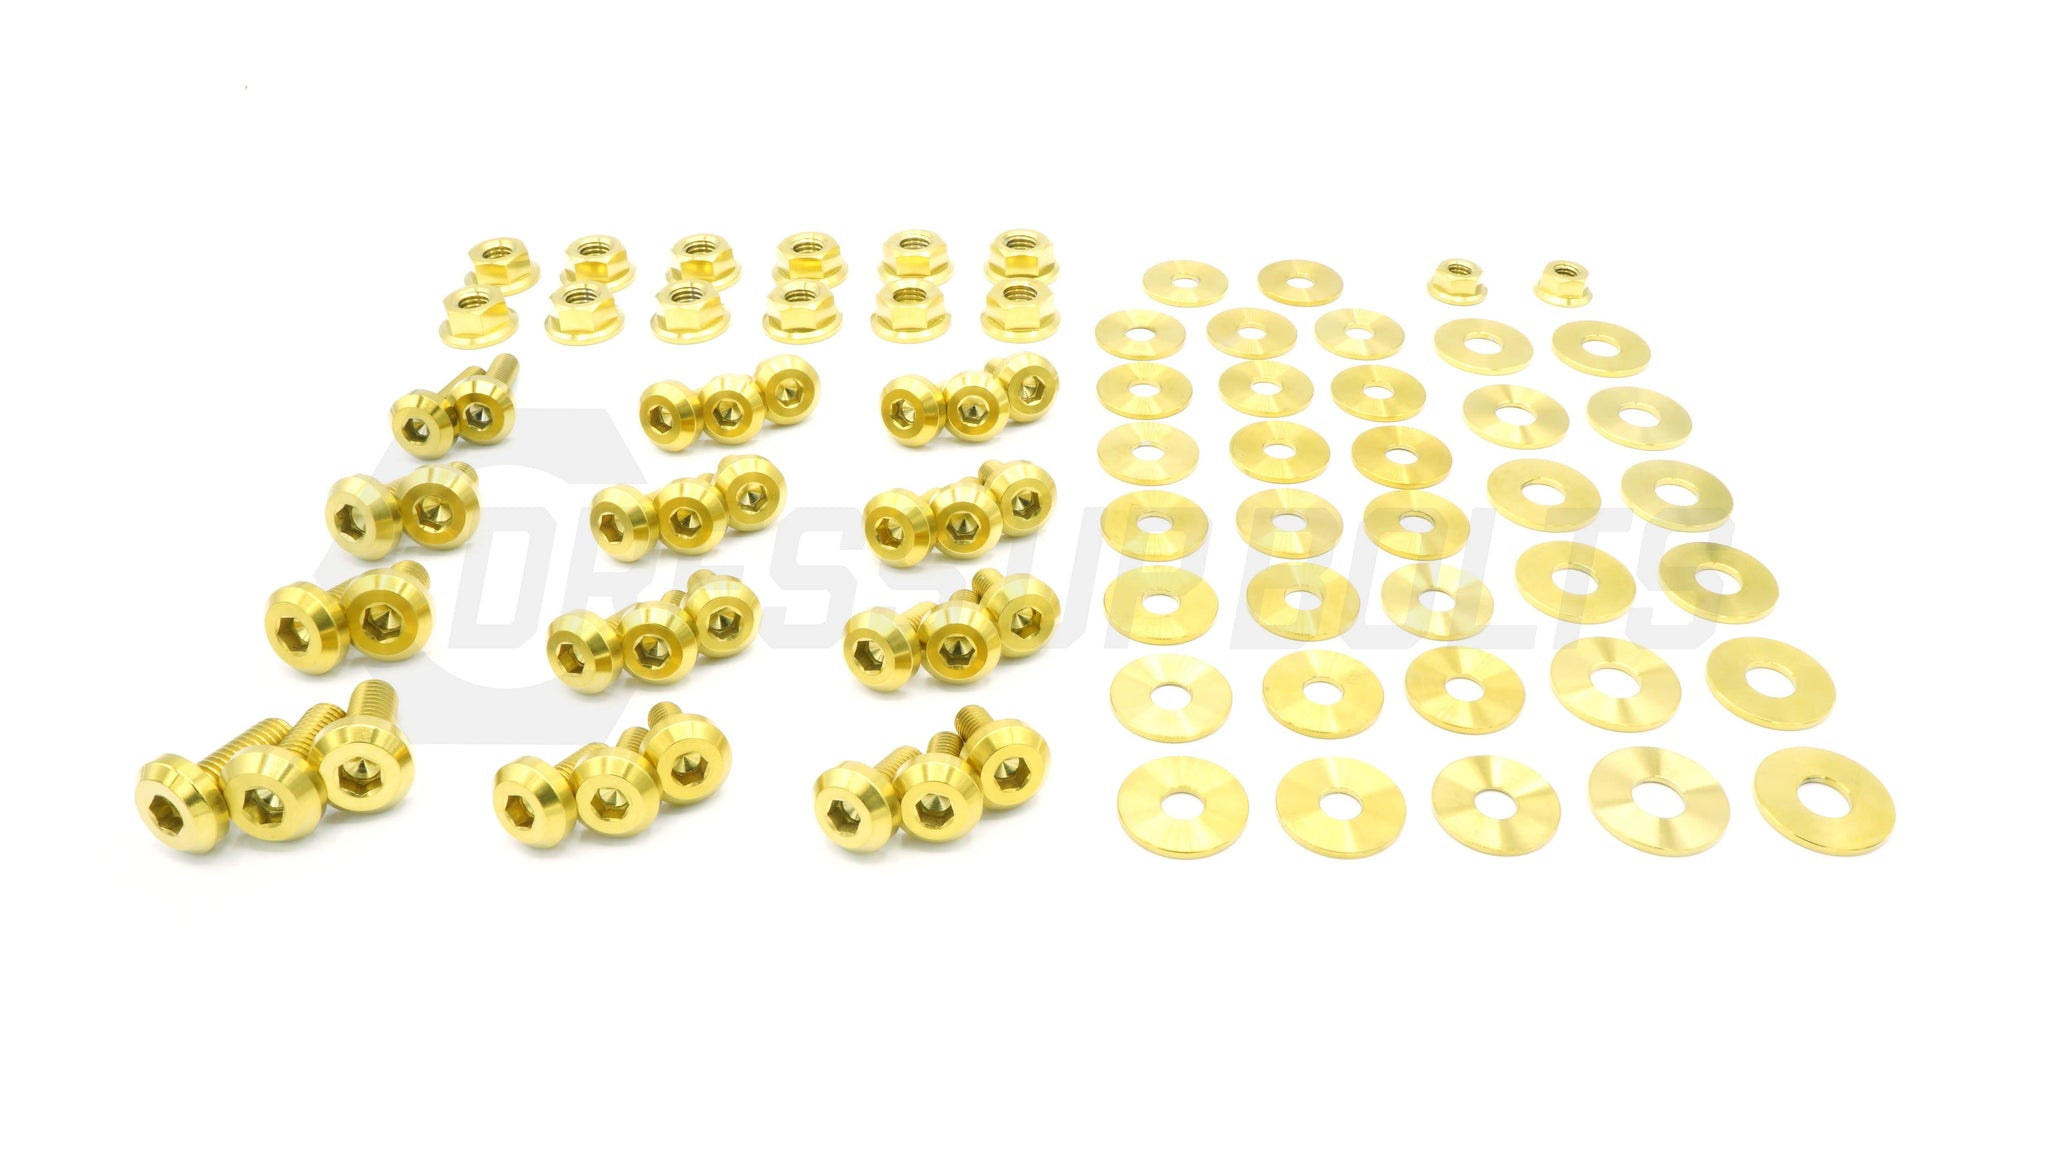 Scion FR-S (2013-2016) Titanium Dress Up Bolts Full Engine Bay Kit - DressUpBolts.com